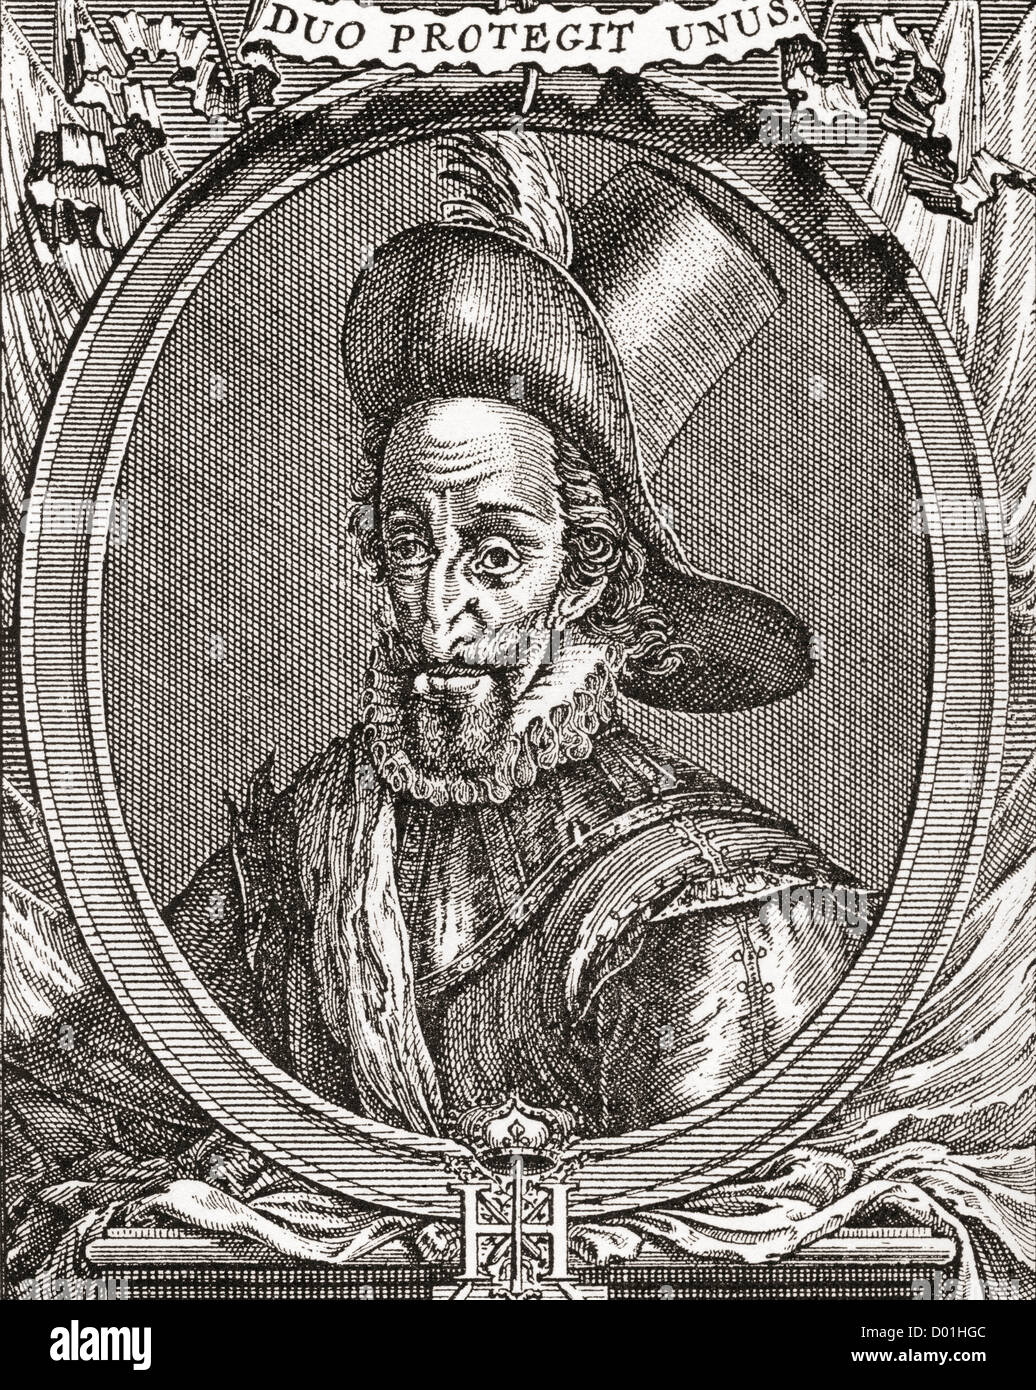 Henry IV, 1553 –1610. King of Navarre (as Henry III) from 1572 to 1610 and King of France from 1589 to 1610. - Stock Image